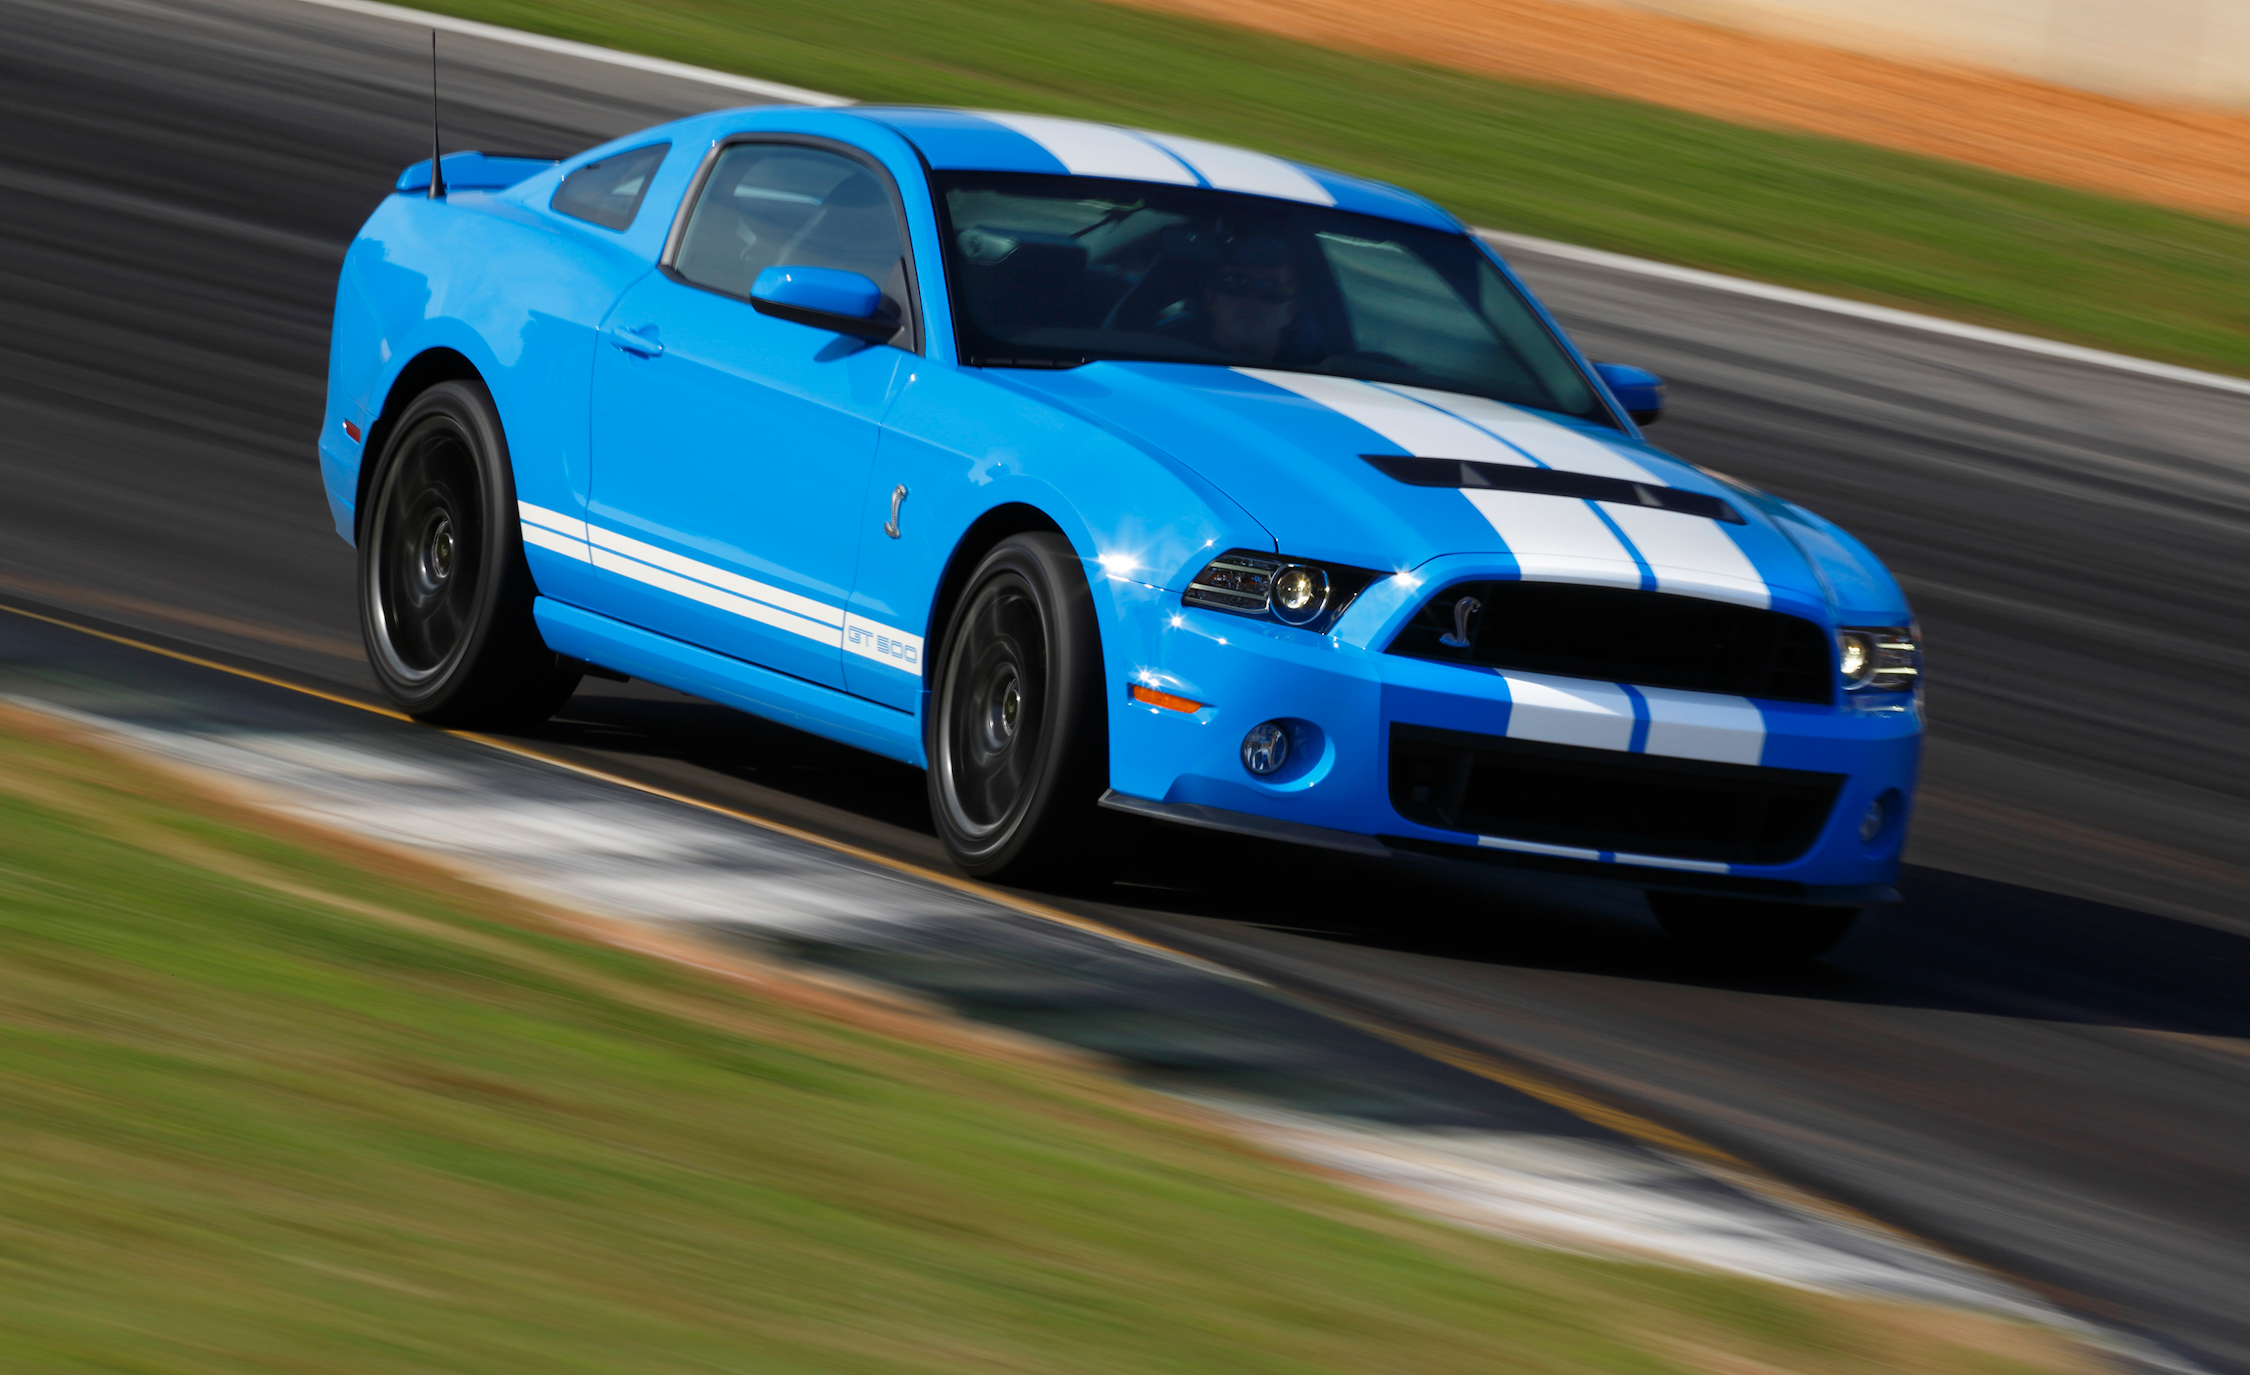 2013 Ford Mustang Shelby GT500 Blue Test Drive Performance (View 38 of 47)